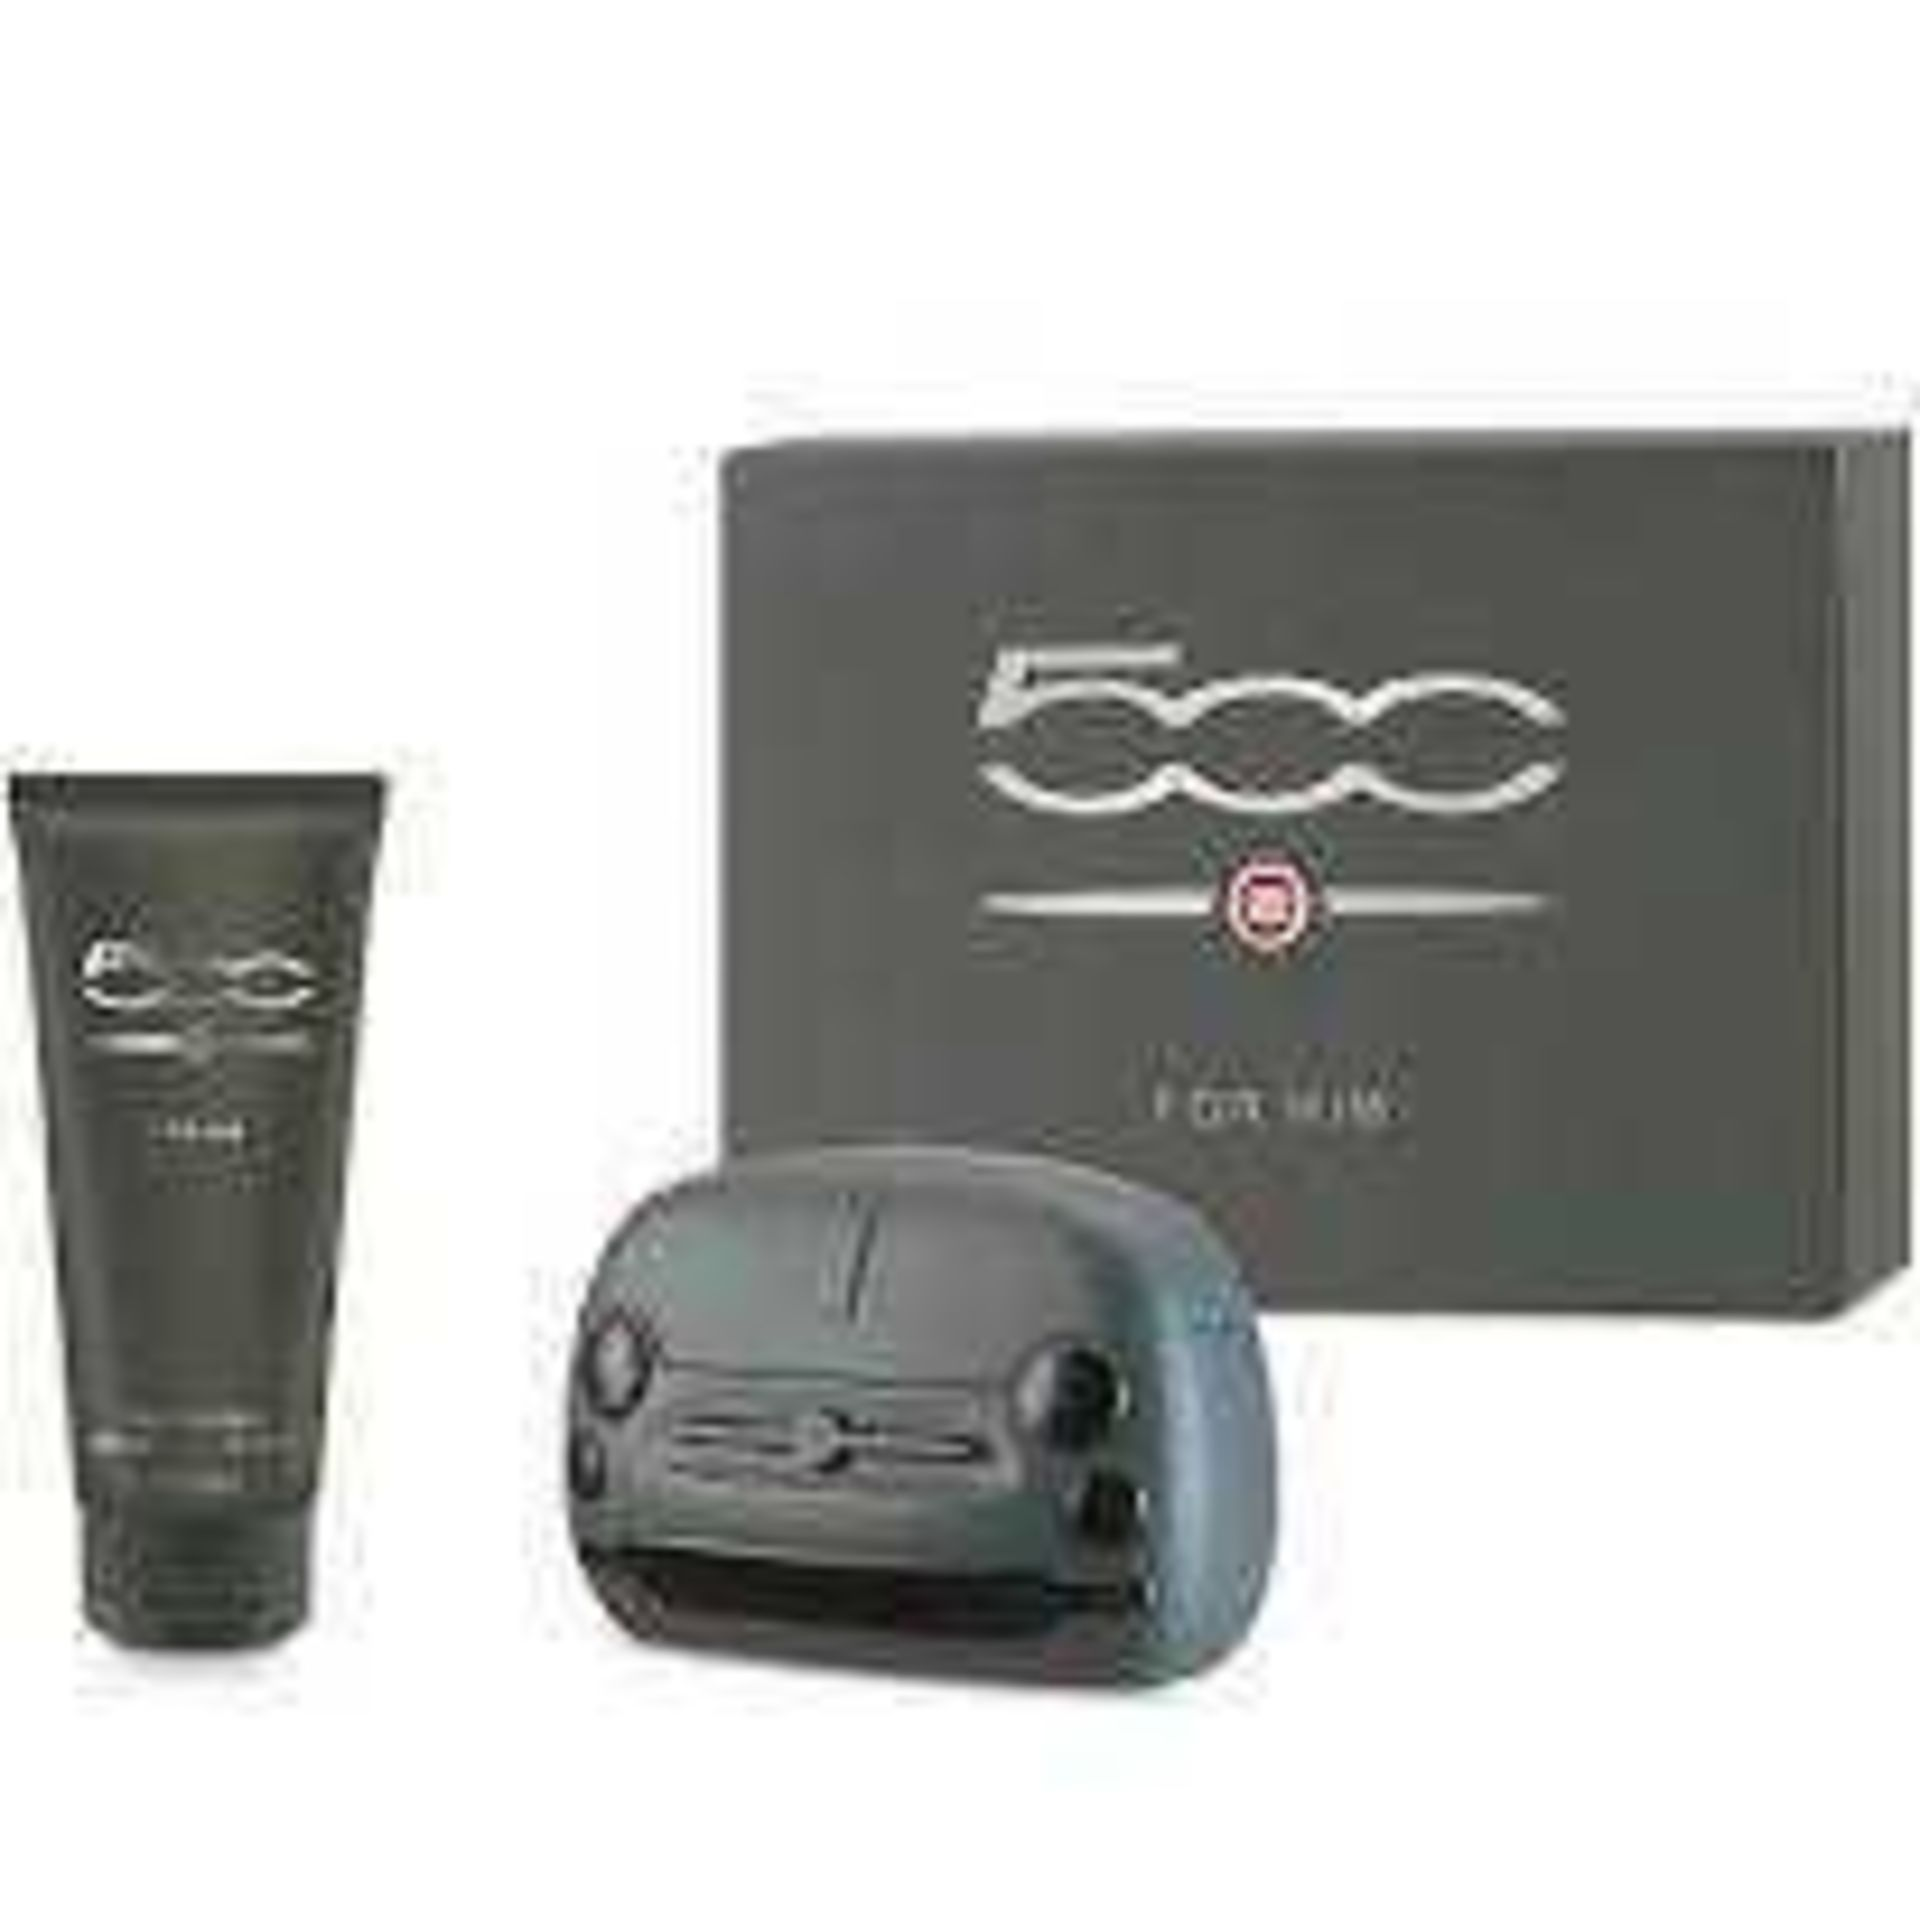 RRP £30 Each Assorted Gift Sets To Include Nailsinc London And 500 Fiat For Men Gift Set